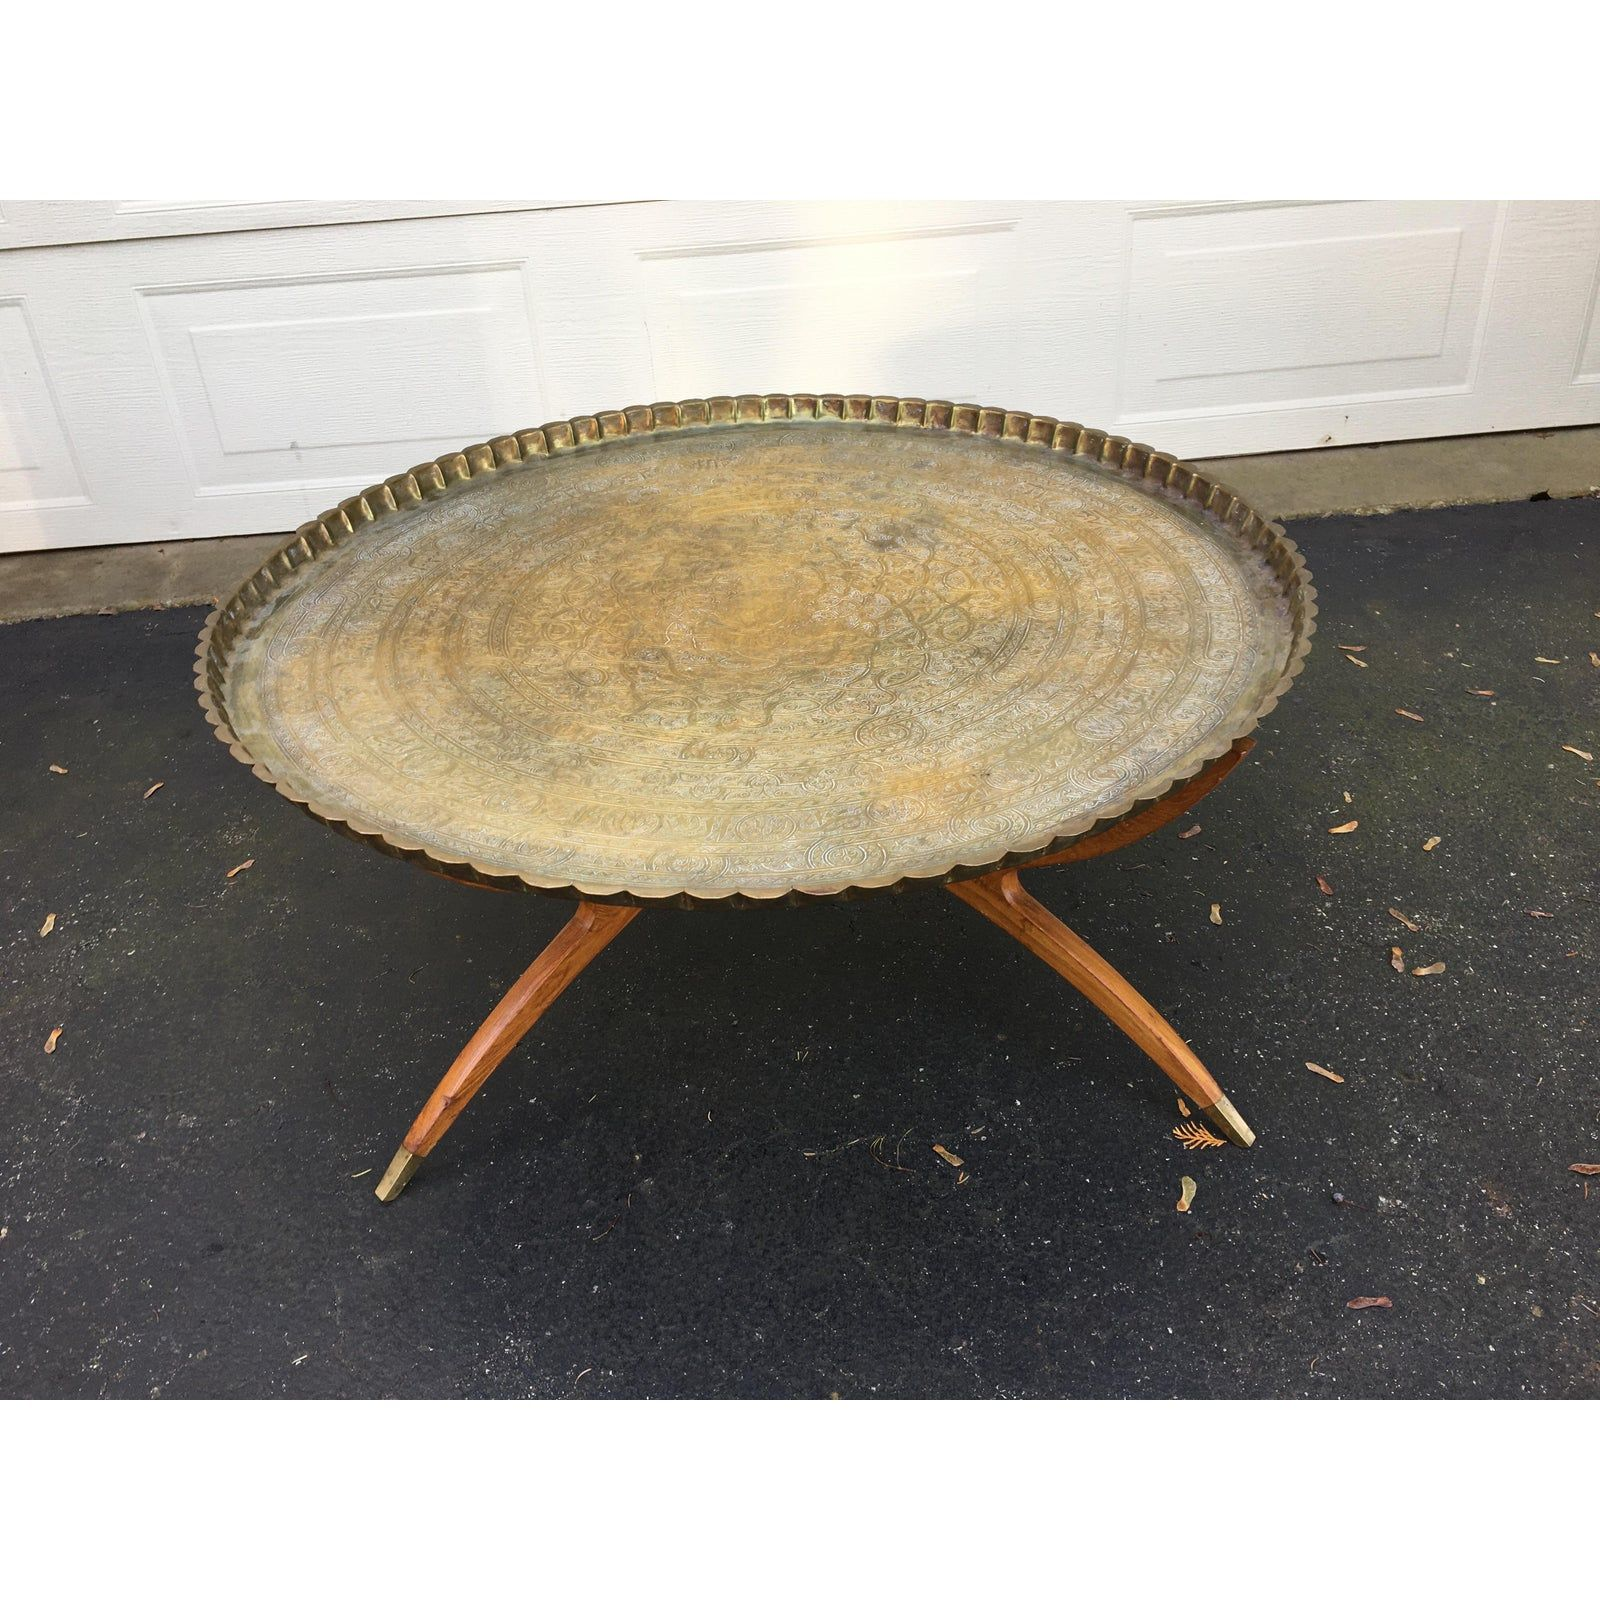 Moroccan Round Brass Tray Coffee Table Antique Coffee Tables Coffee Table Metal Coffee Table [ 1280 x 1280 Pixel ]